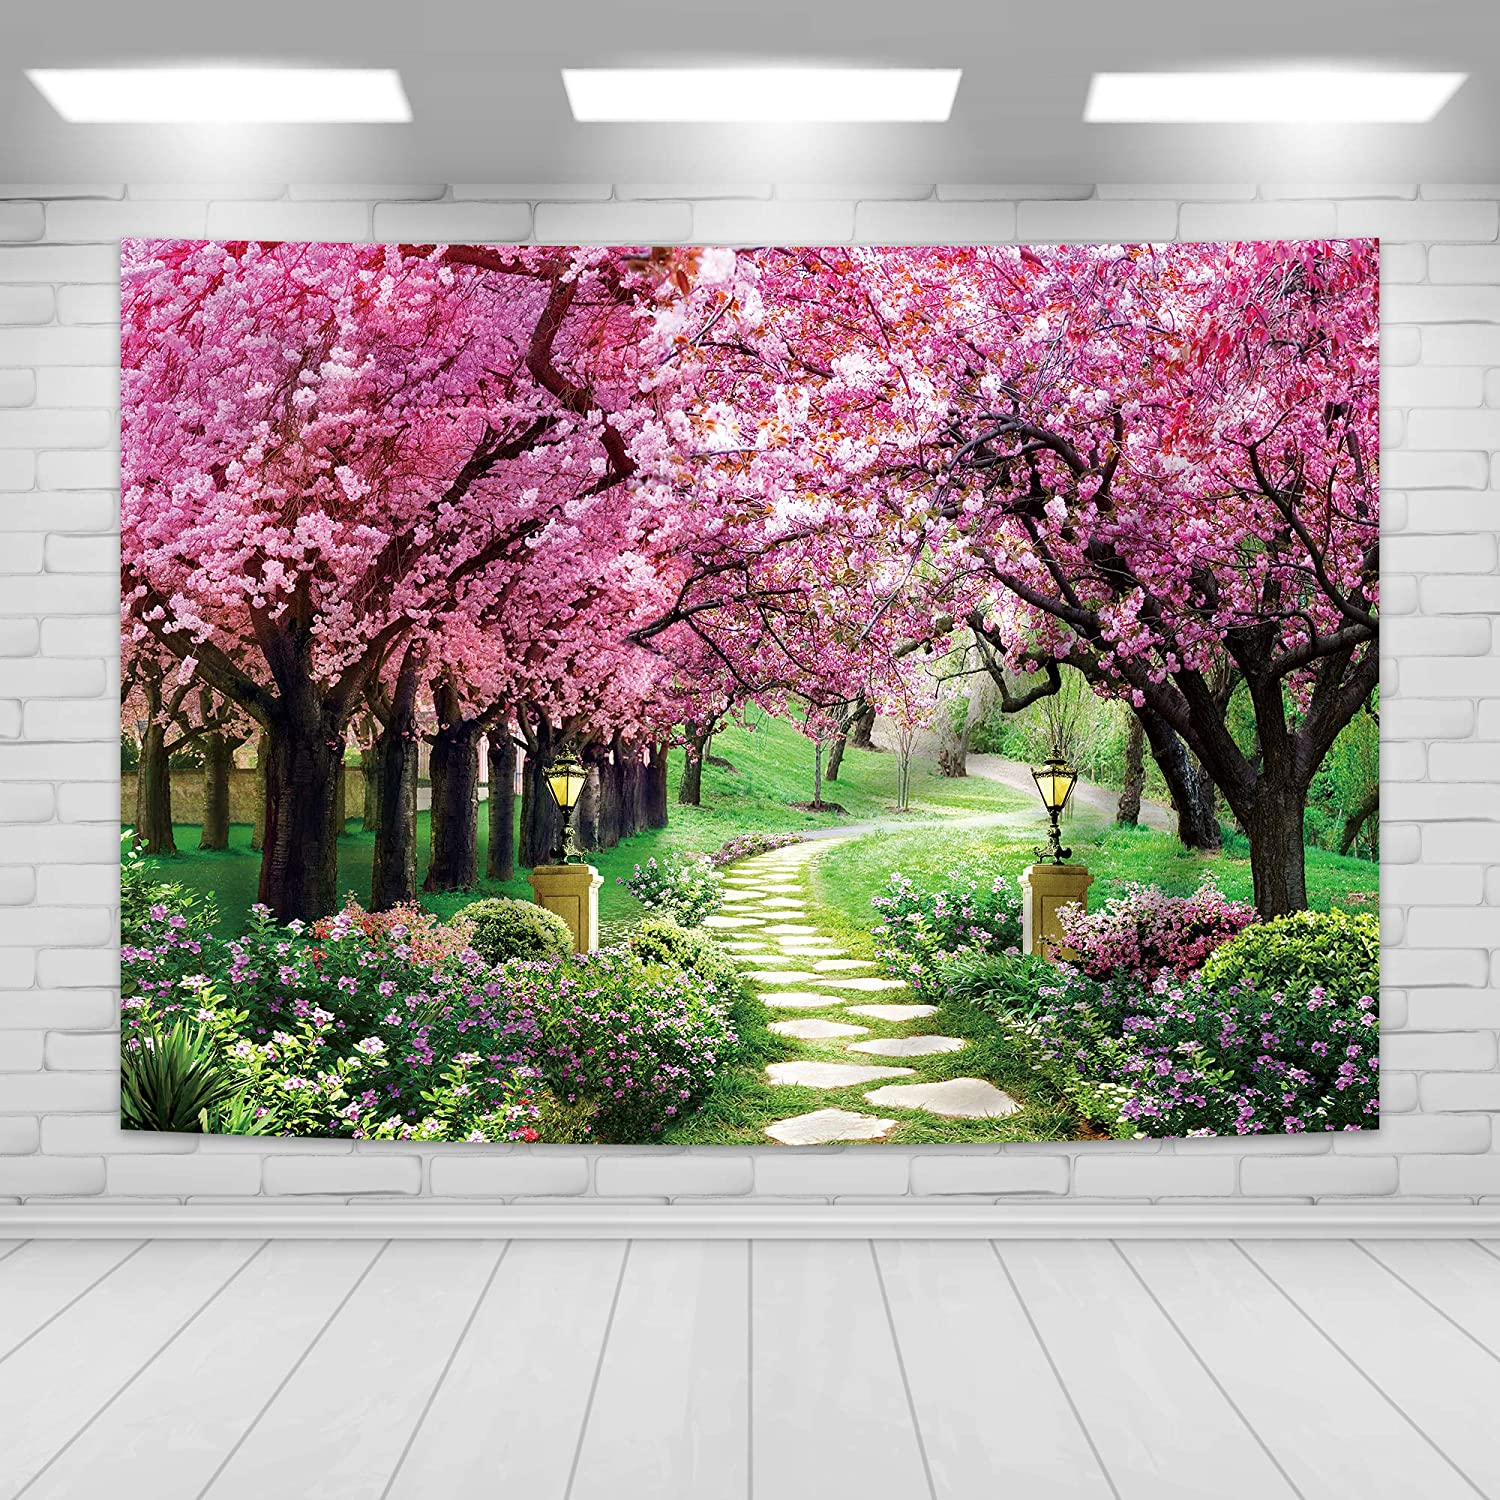 Imirell Cherry Blossom Backdrop 7Wx5H Feet Spring Garden Path Landsacpe Park Nature Scenic Wedding Baby Shower Birthday Photography Backgrounds Photo Shoot Decor Props Photo Shoot